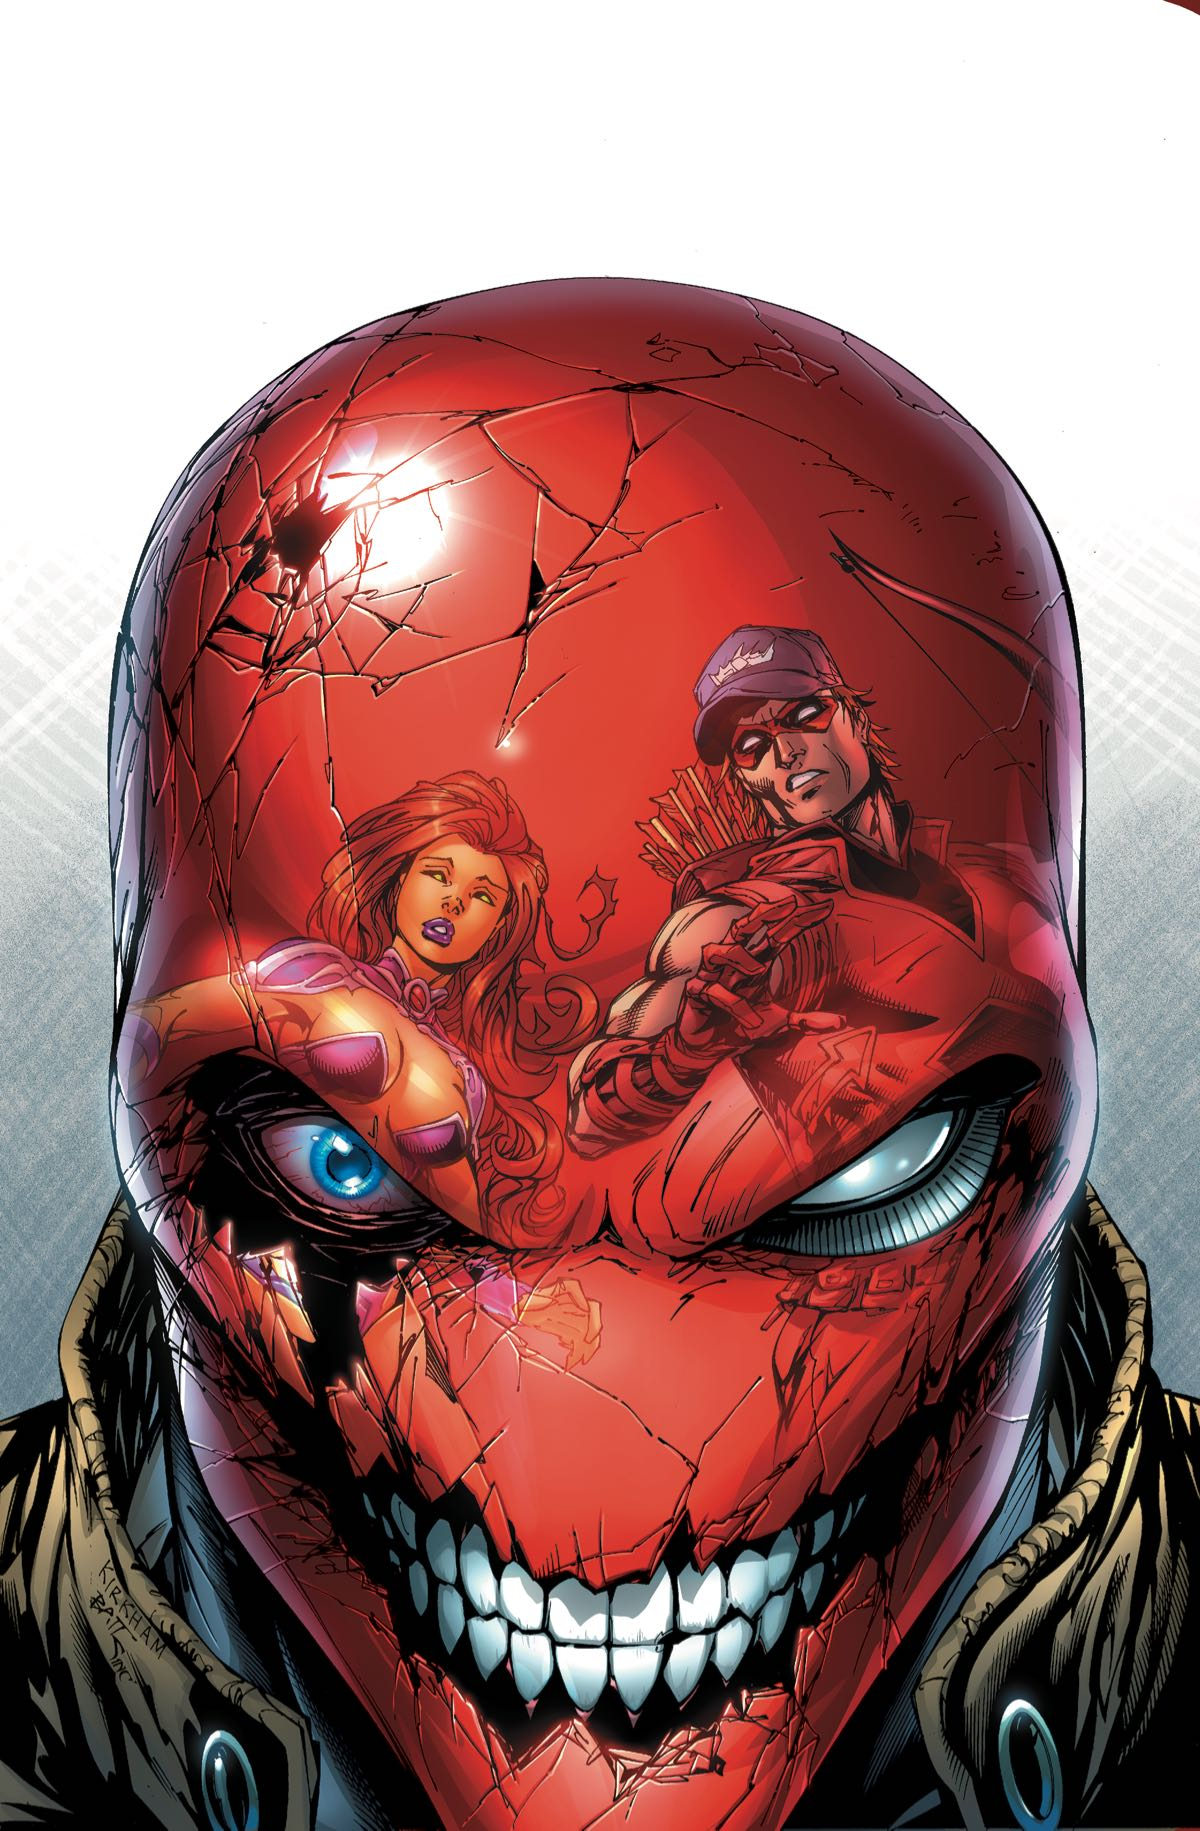 RED HOOD AND THE OUTLAWS: THE NEW 52 OMNIBUS VOL. 1 HC